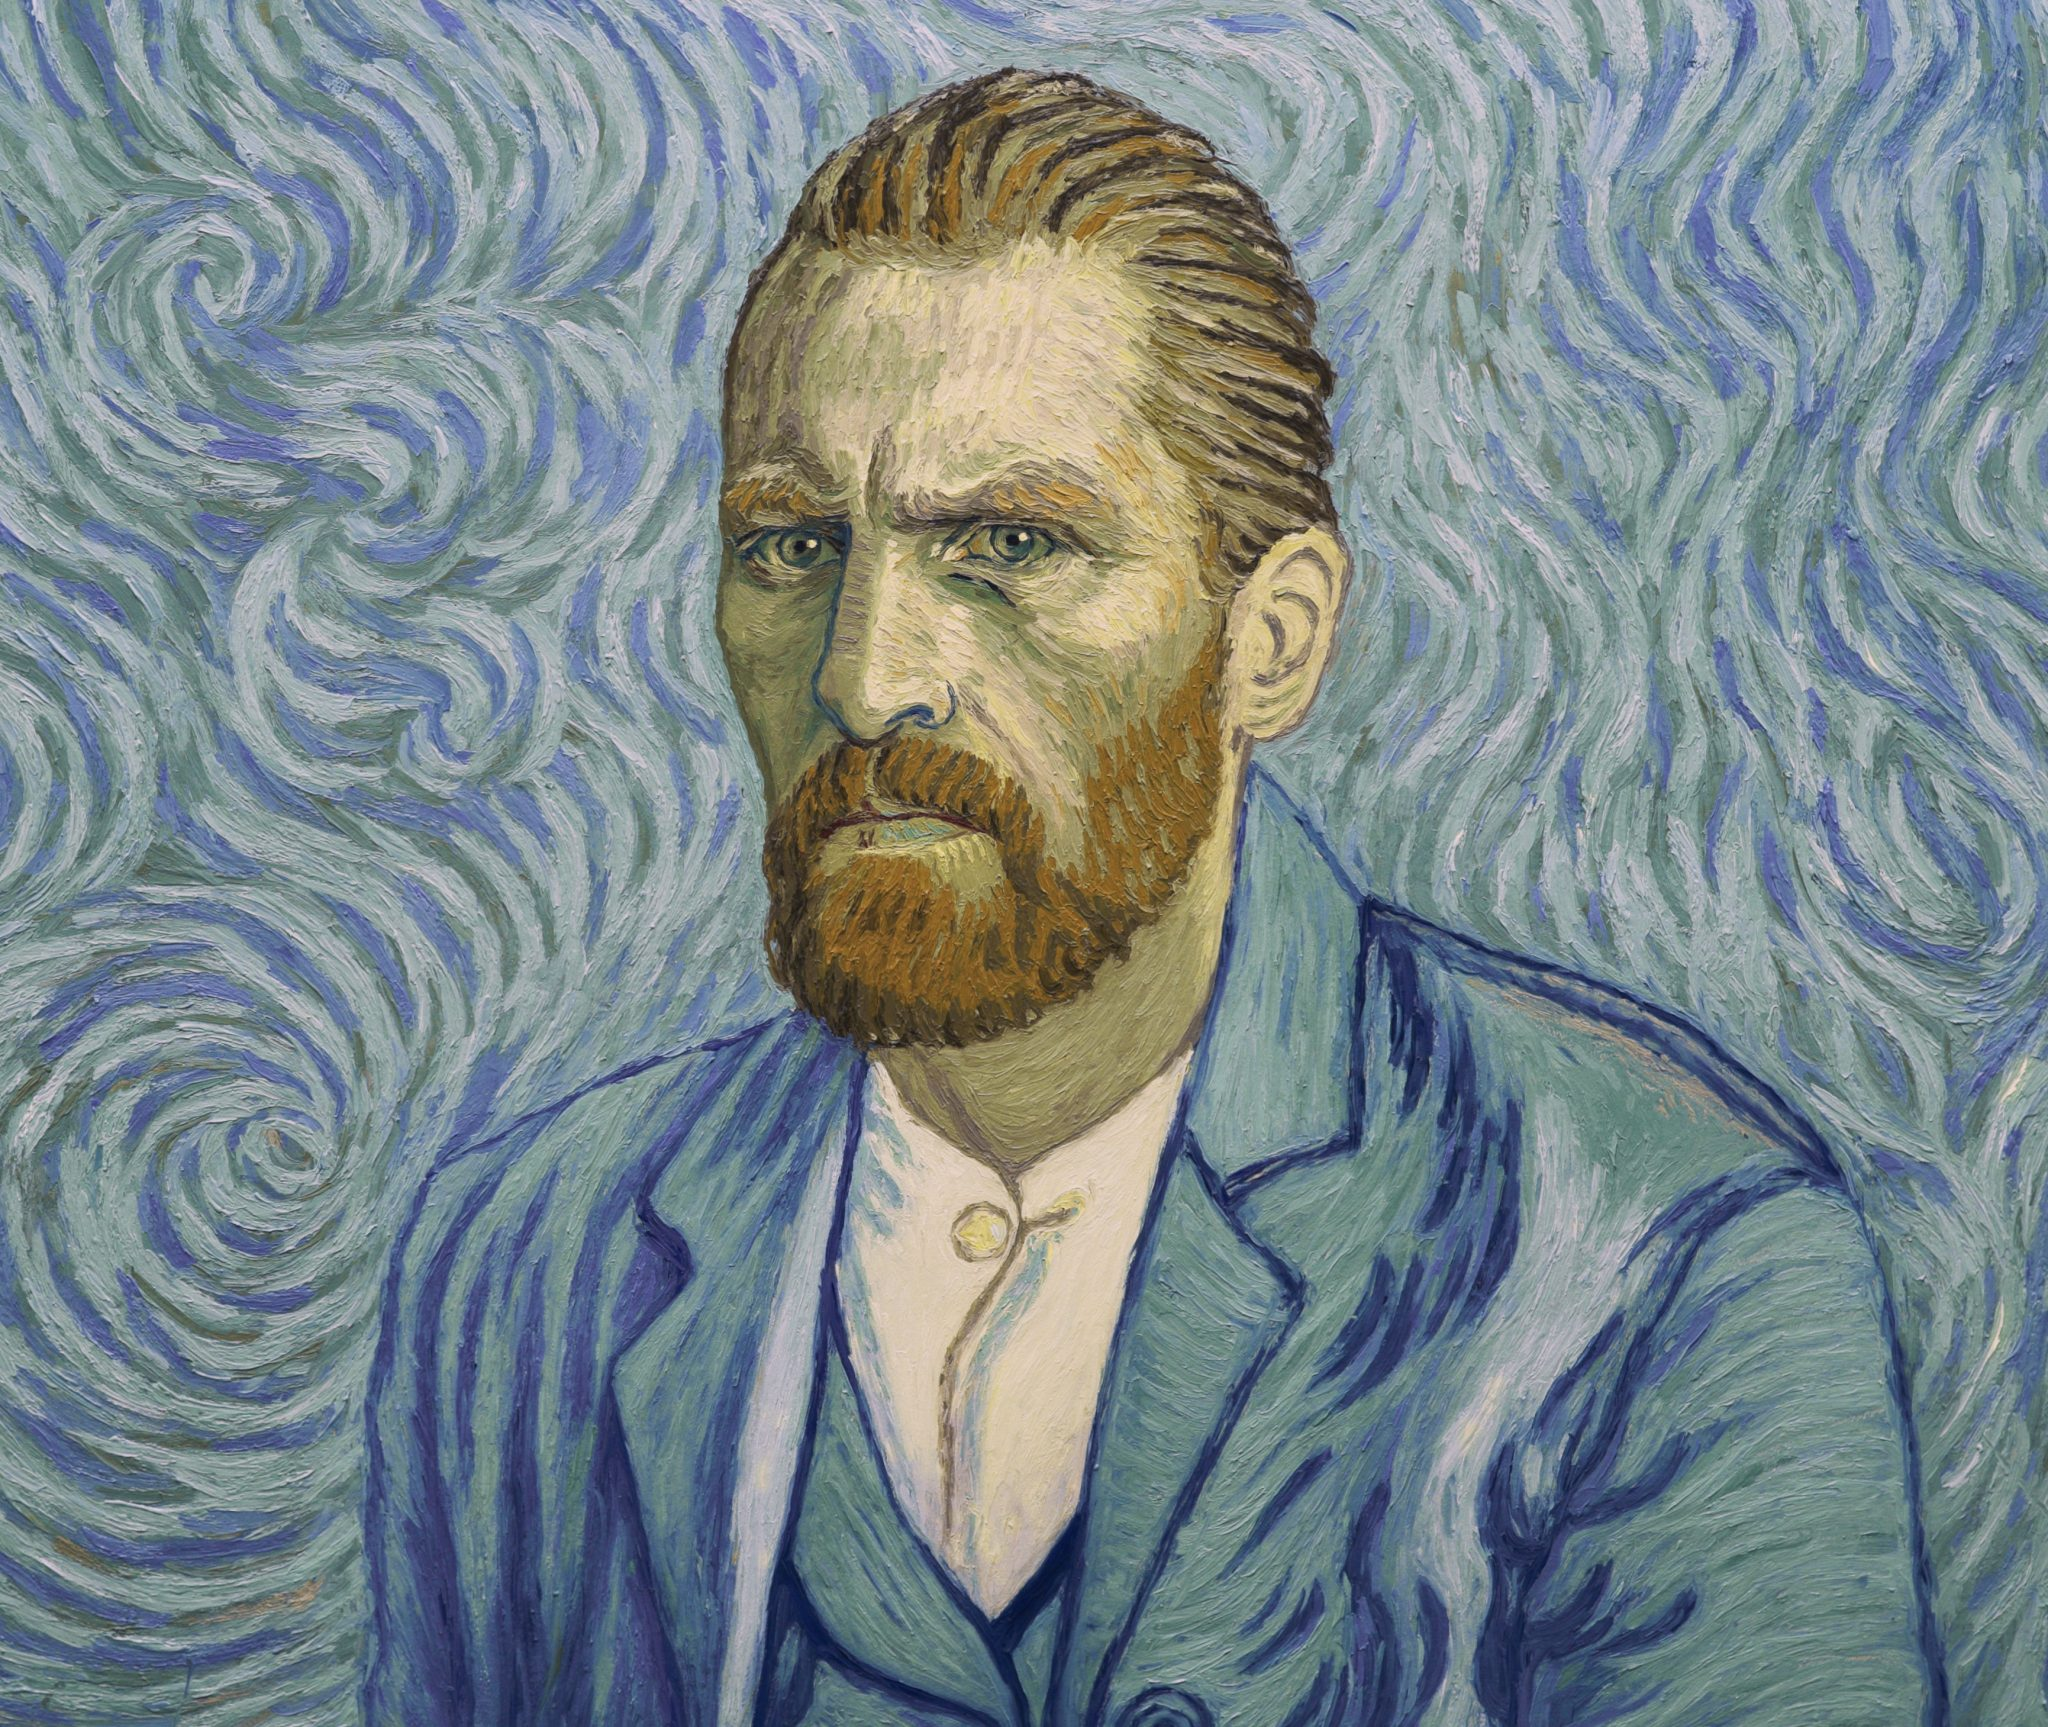 Vincent-Robert-Glyaczk-in-colour-e1507889729172